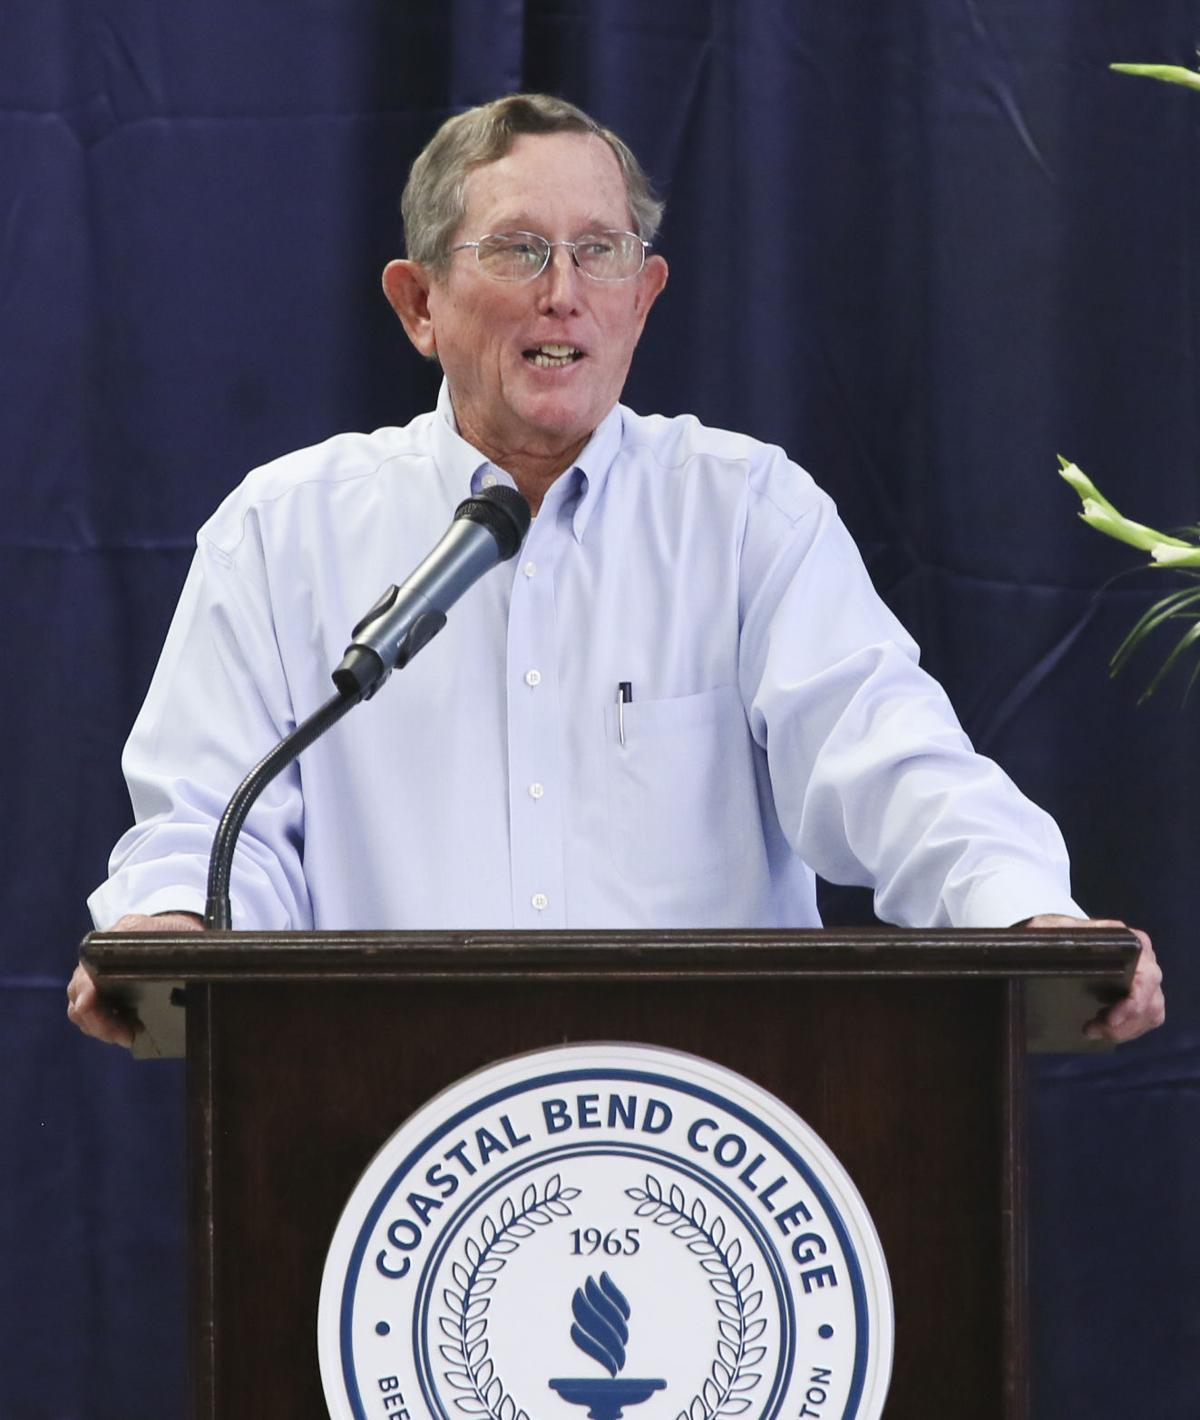 College rallies as new president takes lead